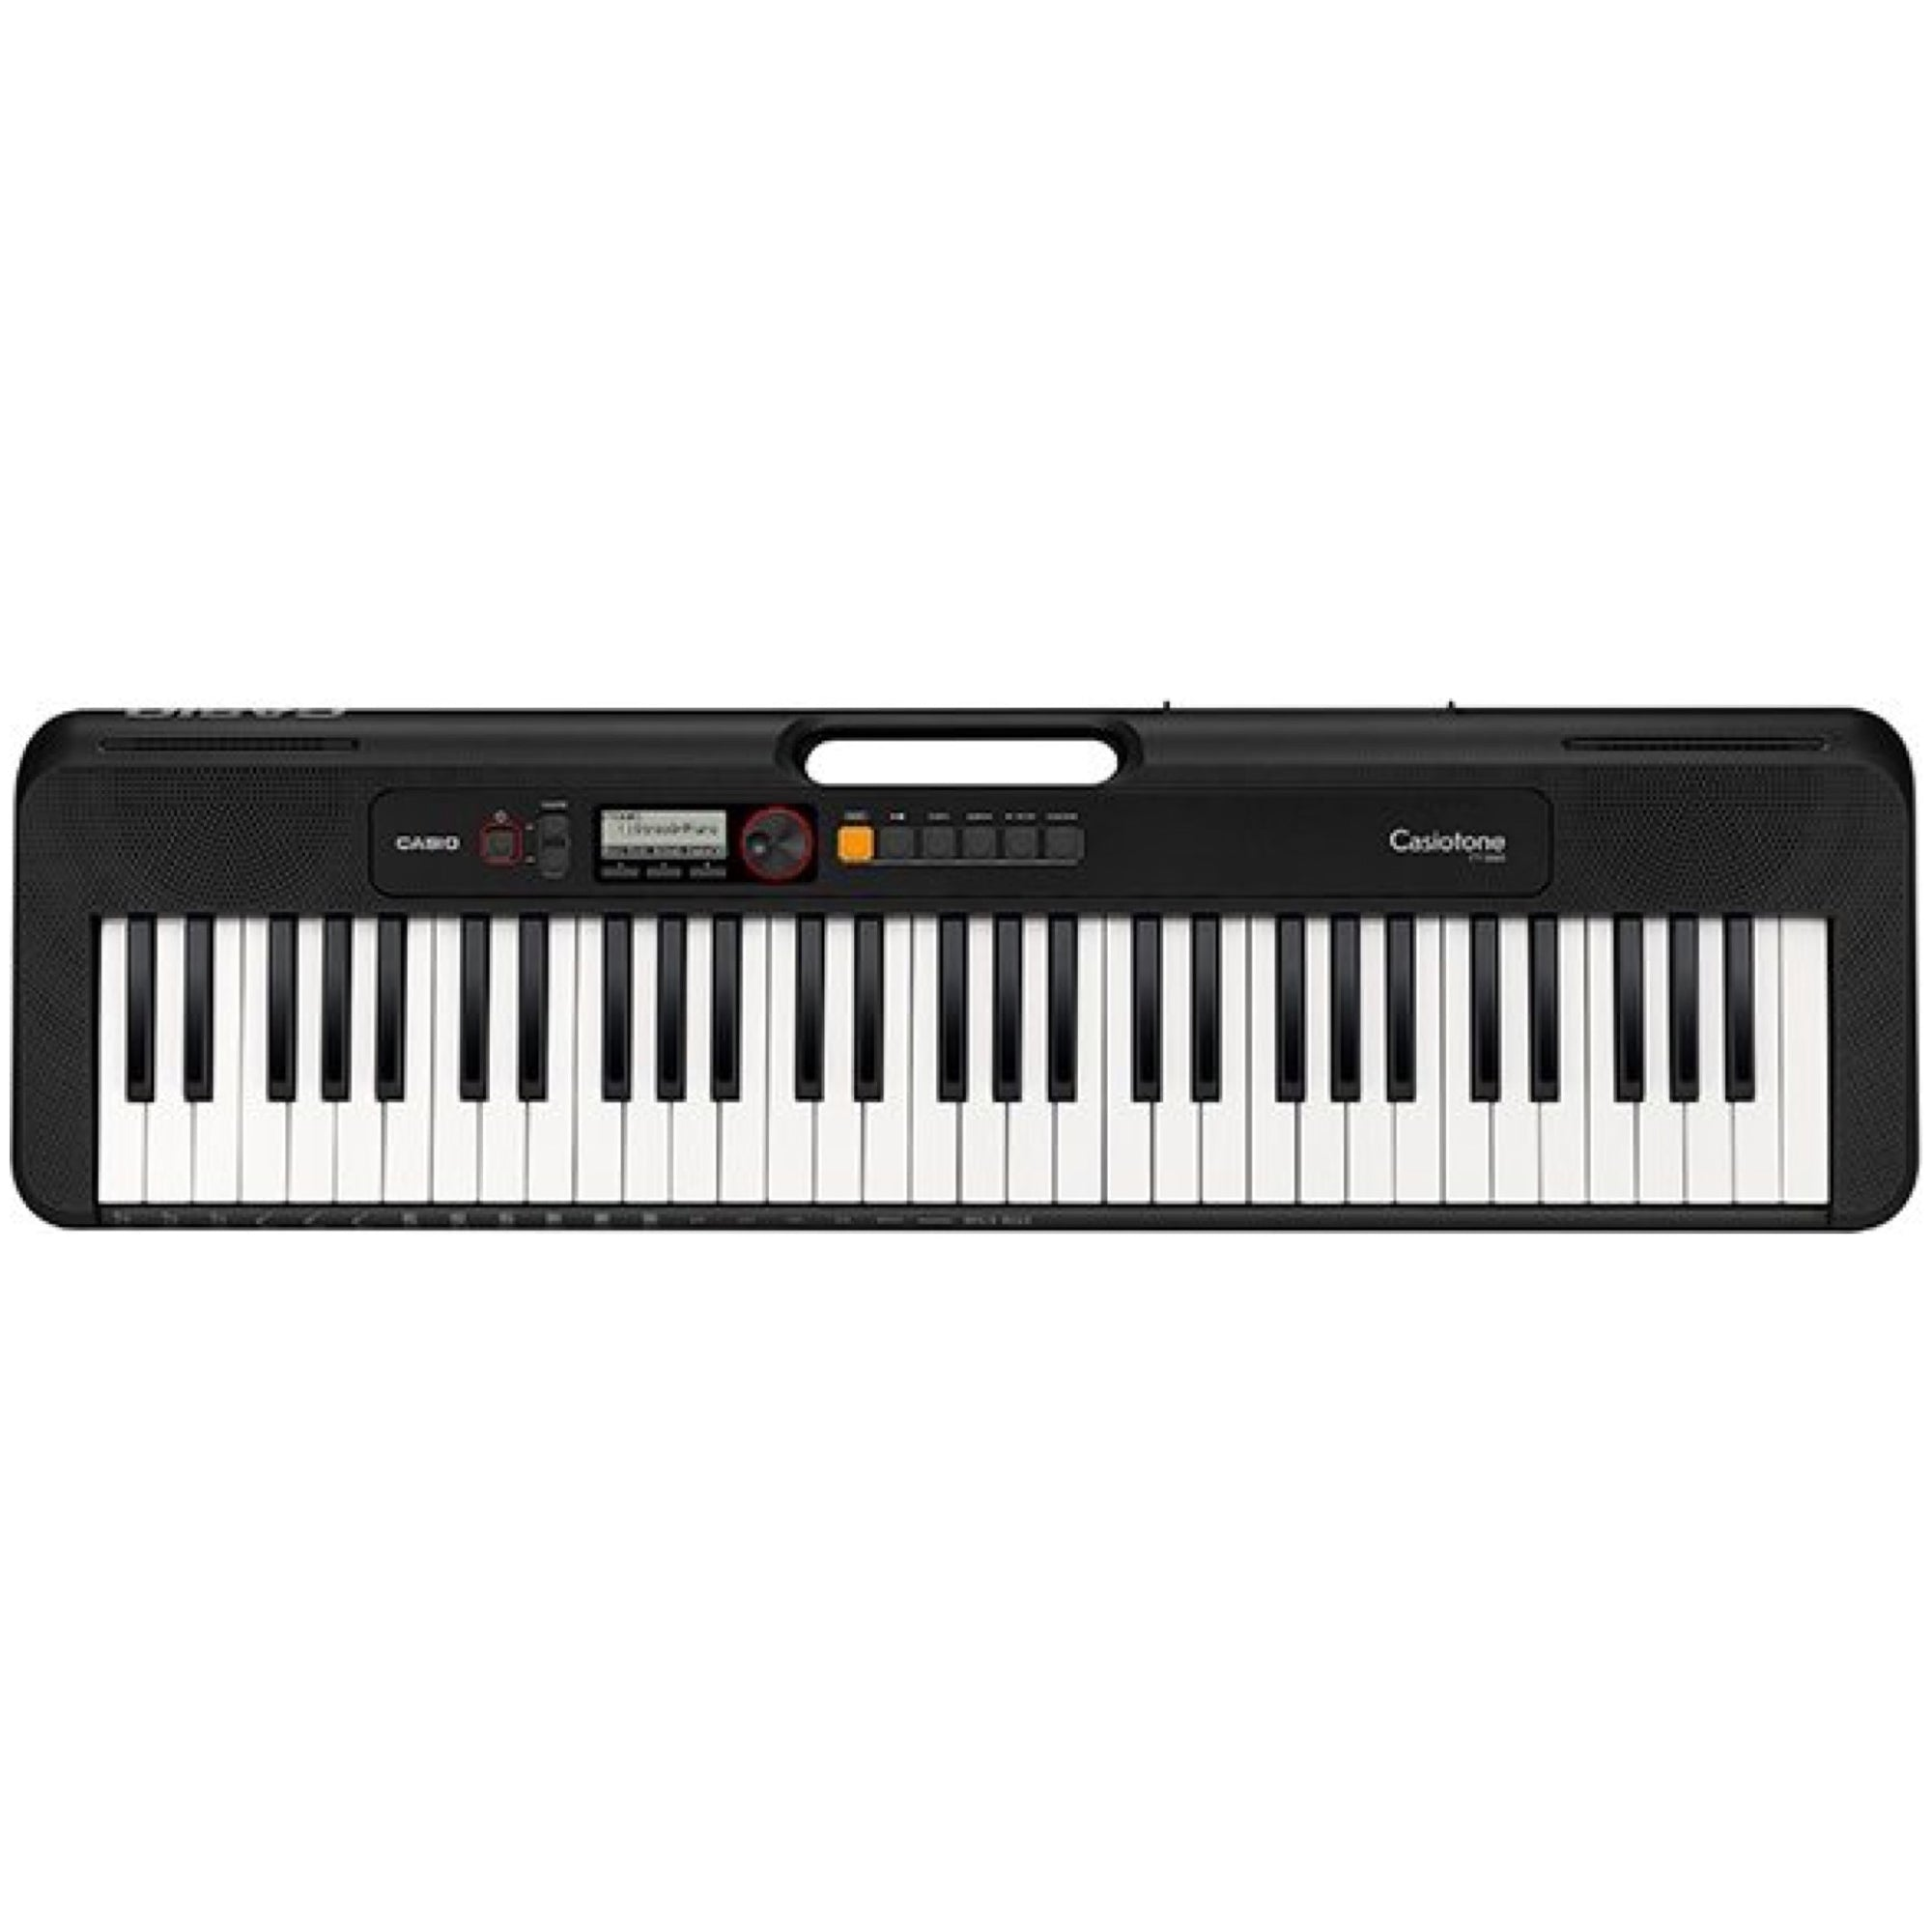 Casio CT-S200 Casiotone Portable Electronic Keyboard with USB, Black